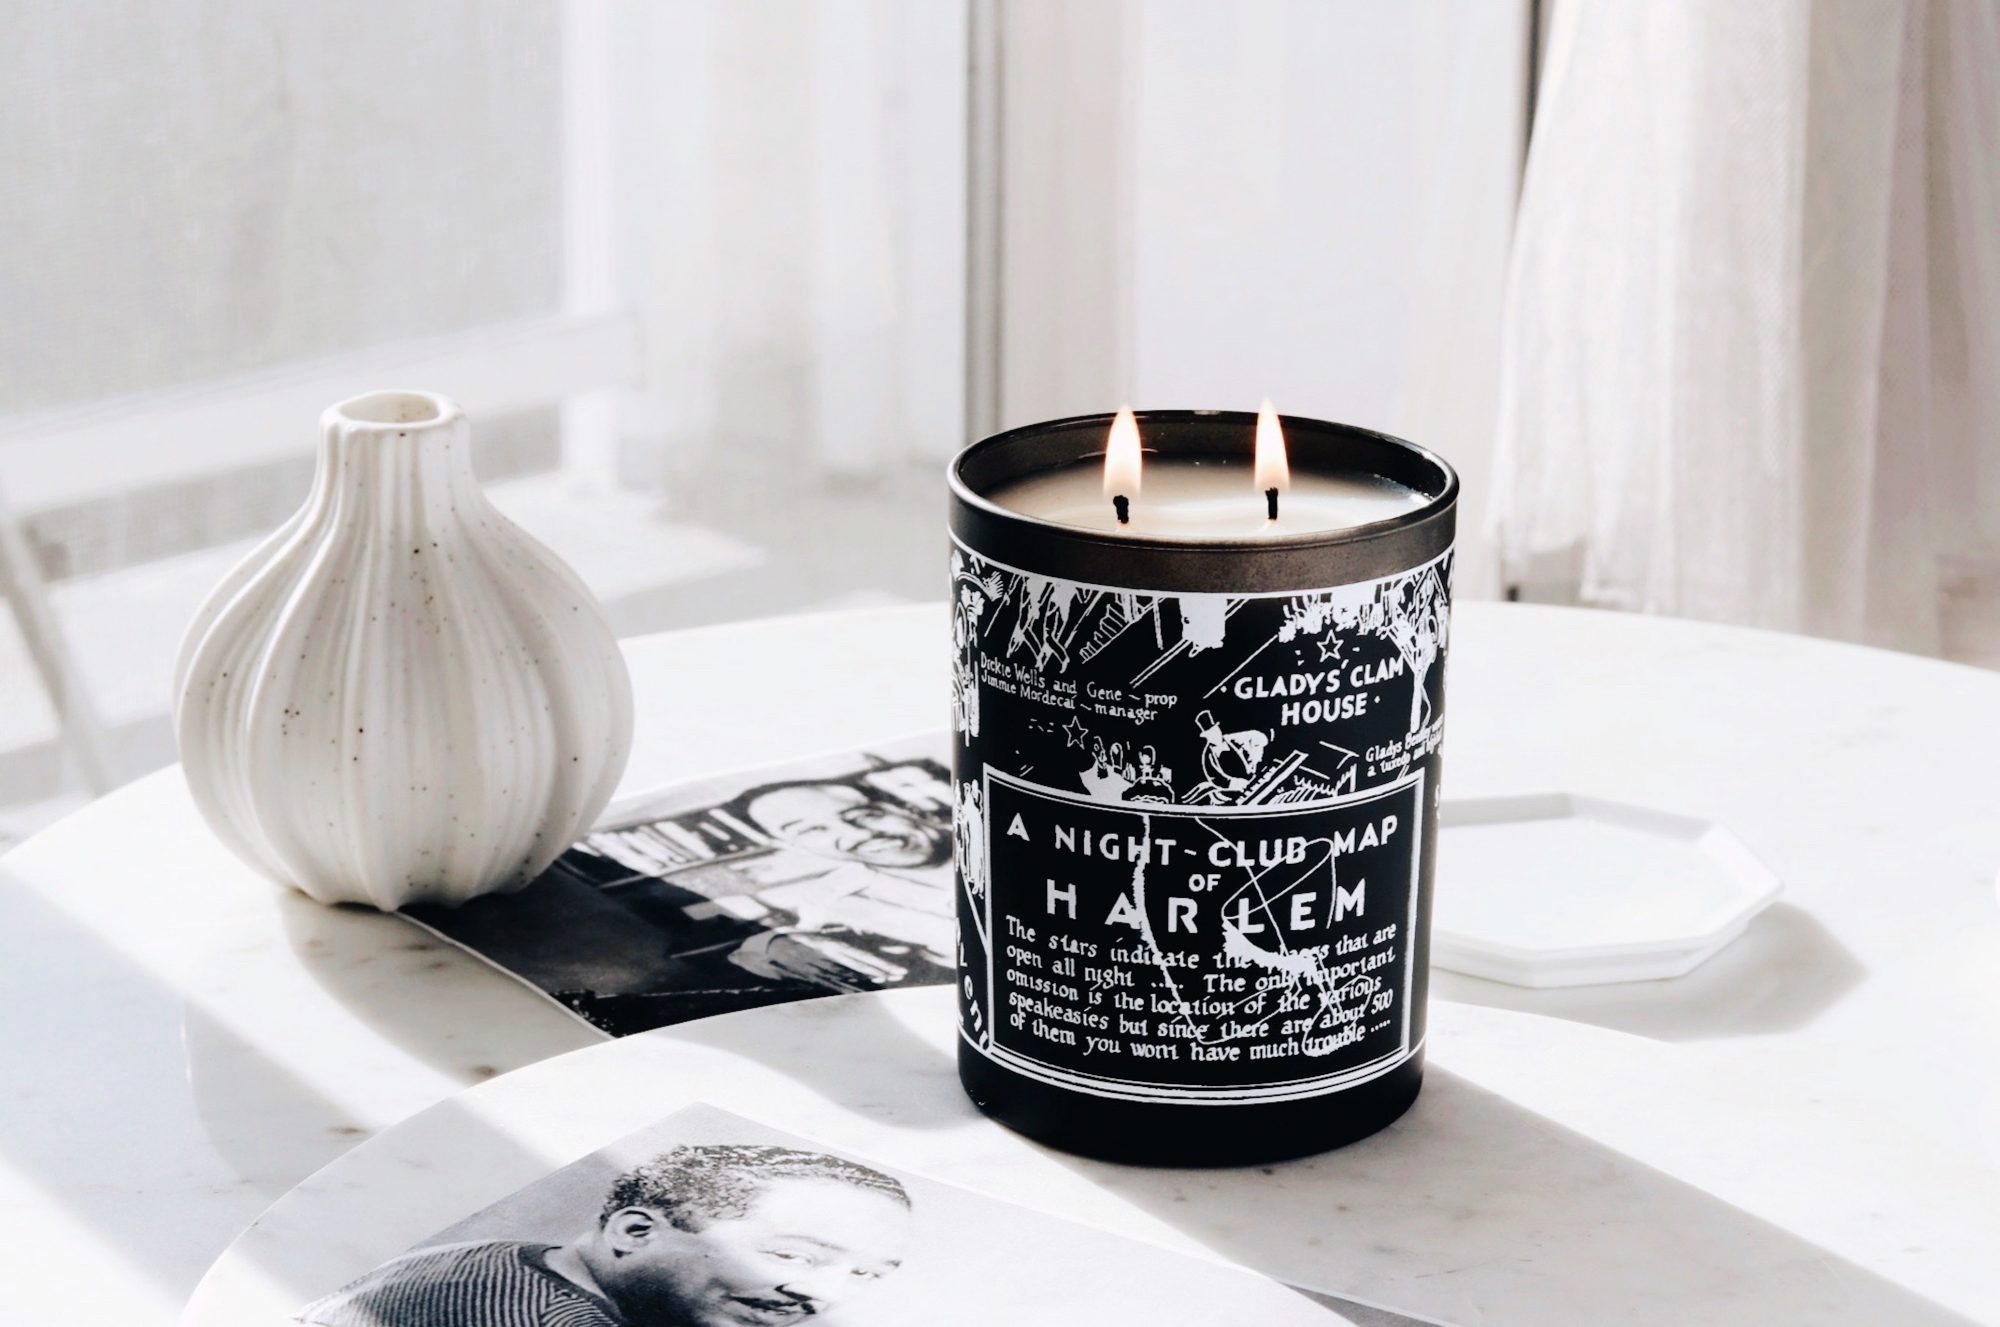 harlem candle company night club map candle surrounded by black and white images